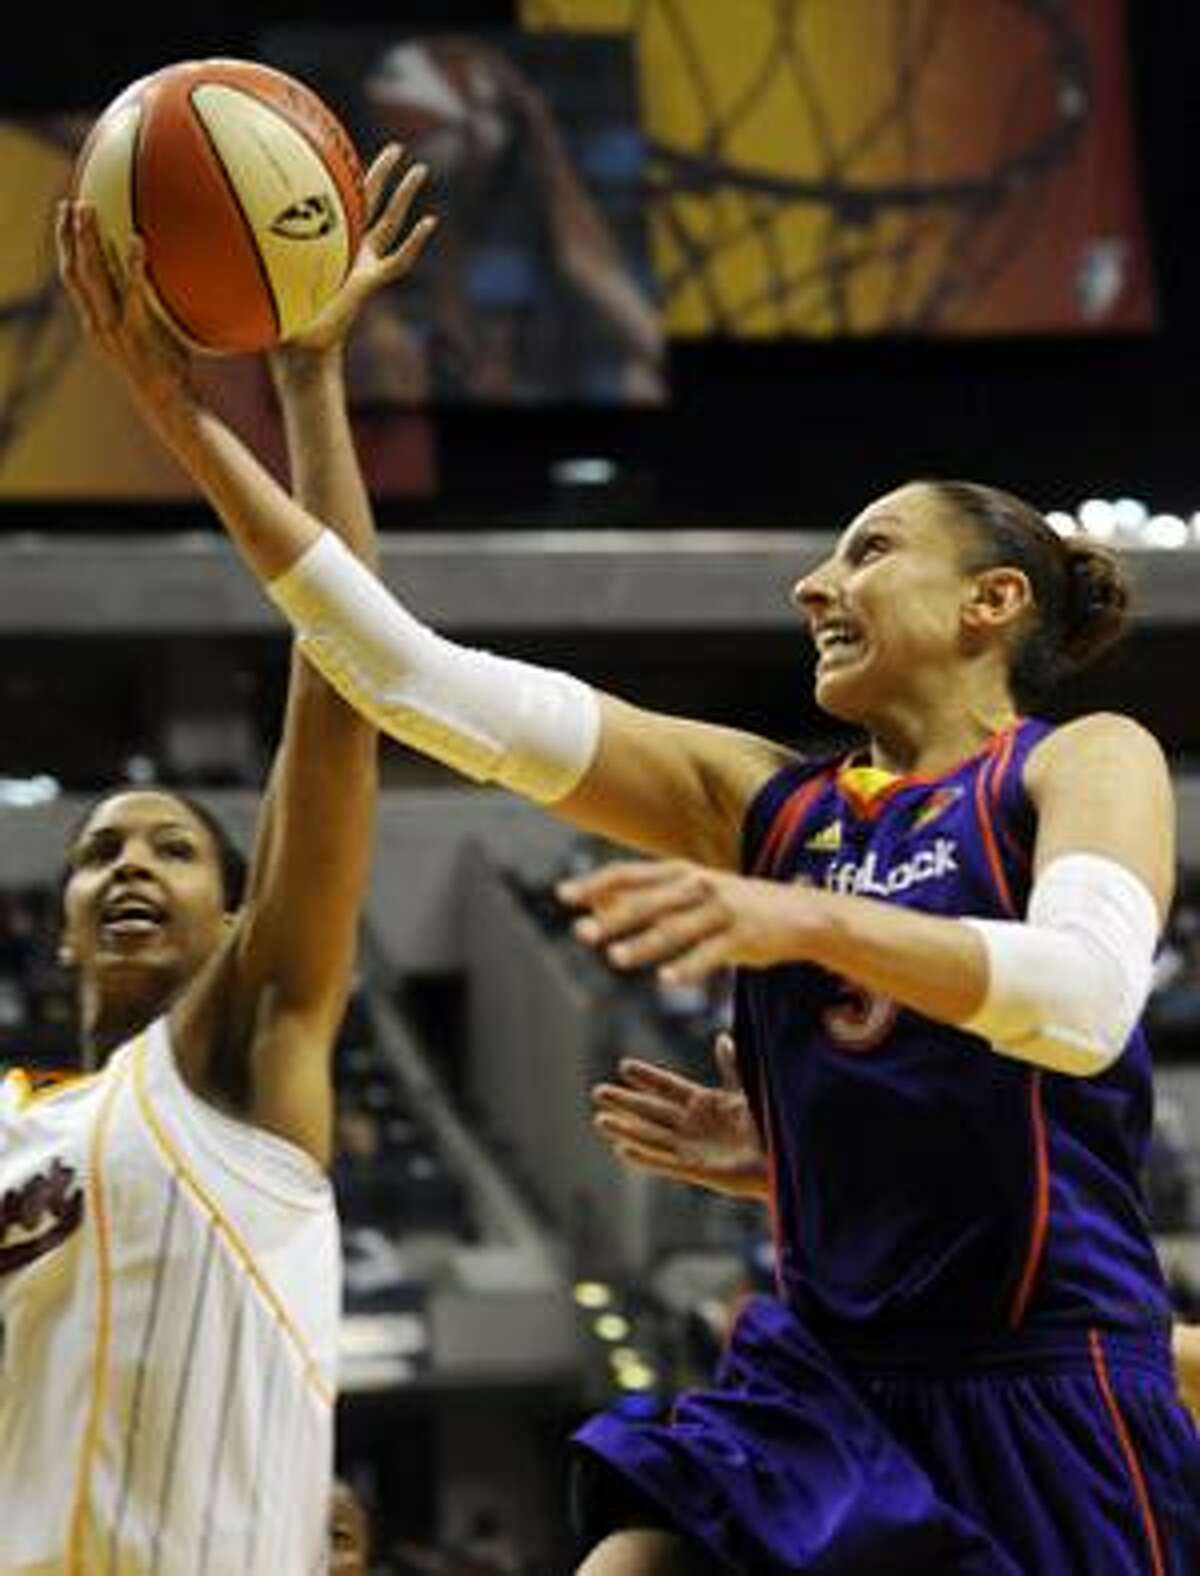 AP Phoenix Mercury guard Diana Taurasi is defended by Indiana Fever center Tammy Sutton-Brown in the second half of an Aug. 13 game in Indianapolis. Indiana won 110-90.